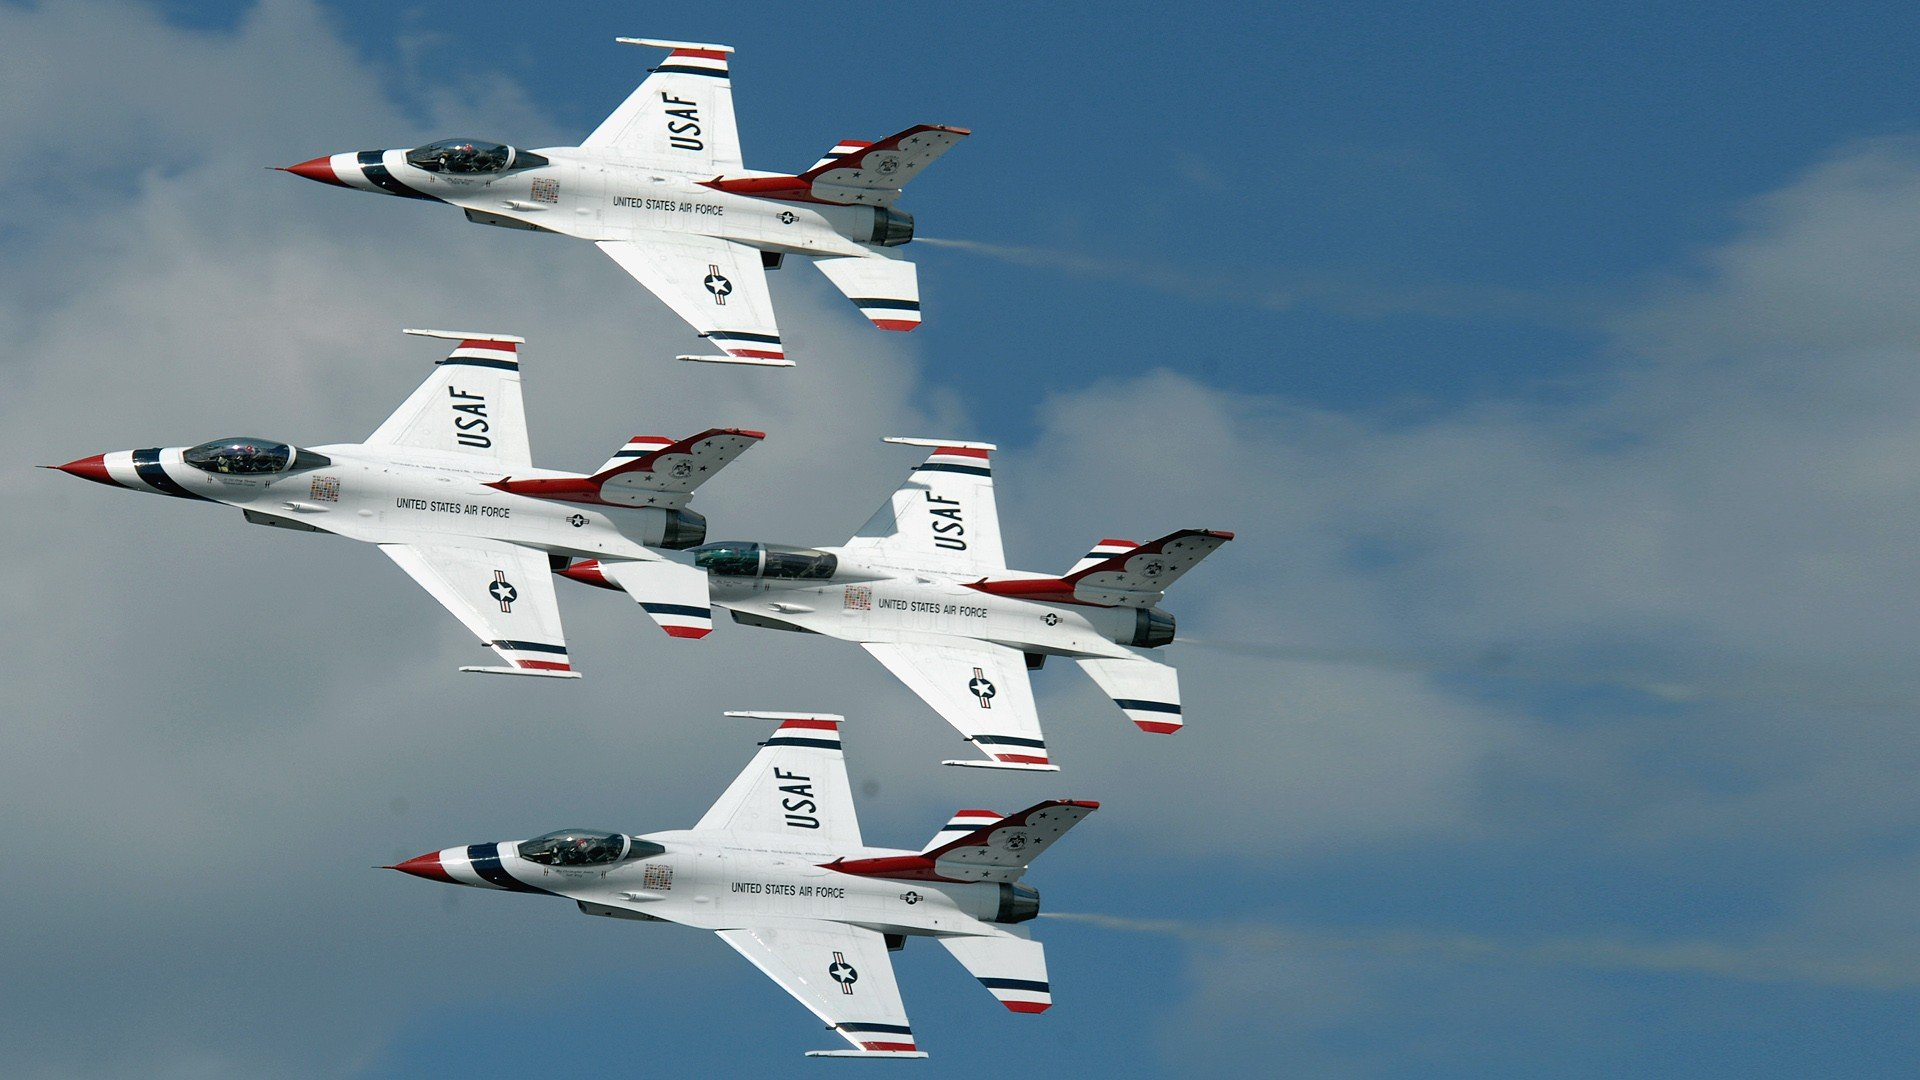 thunderbirds images wallpapers hd -#main